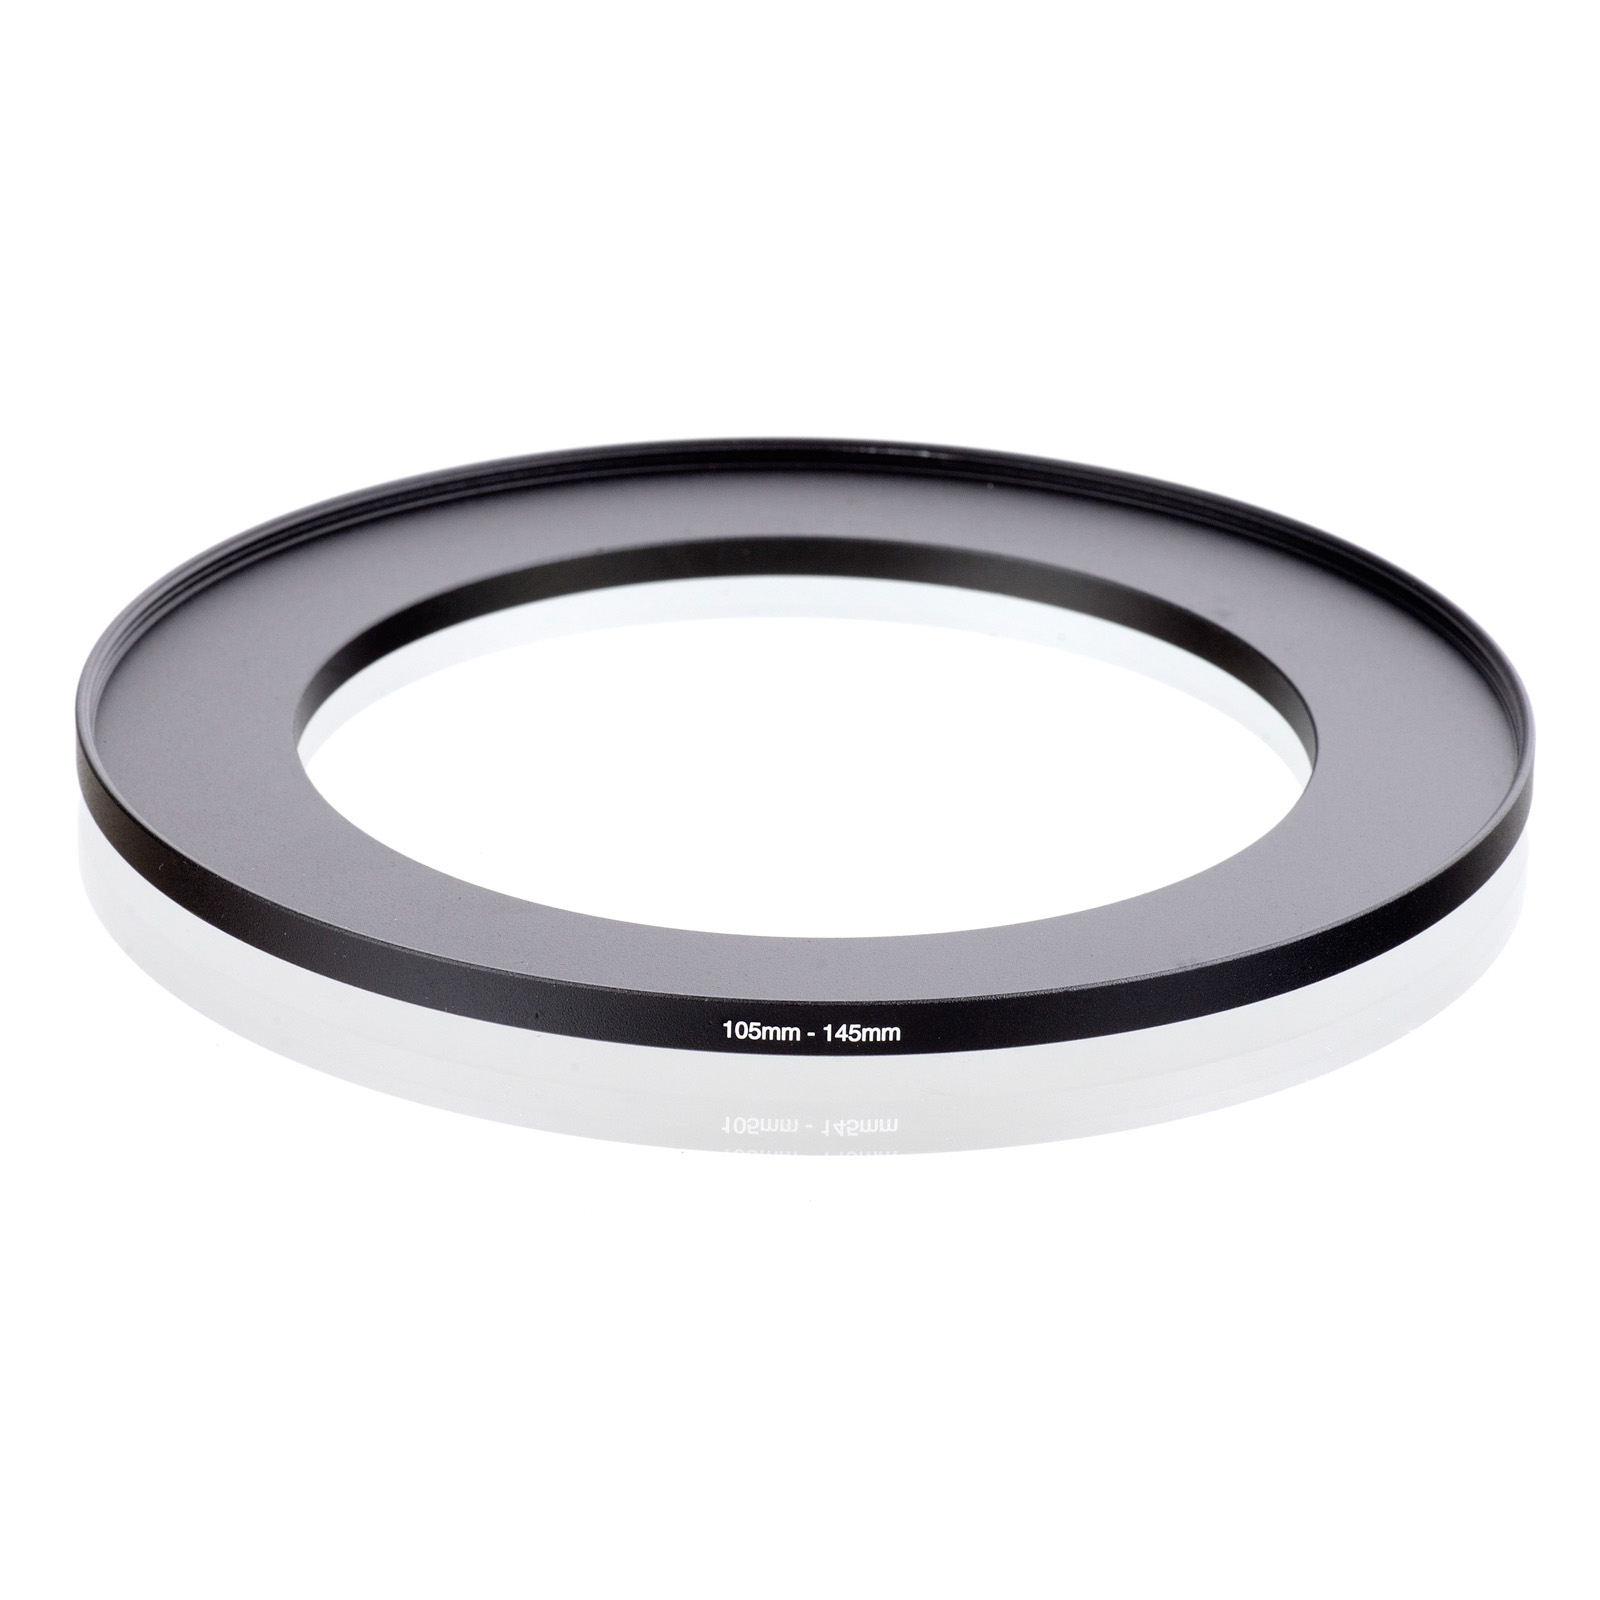 105mm-145mm 105-145mm 105 to 145 Step Up Filter Ring Stepping Adapterfreeshipping